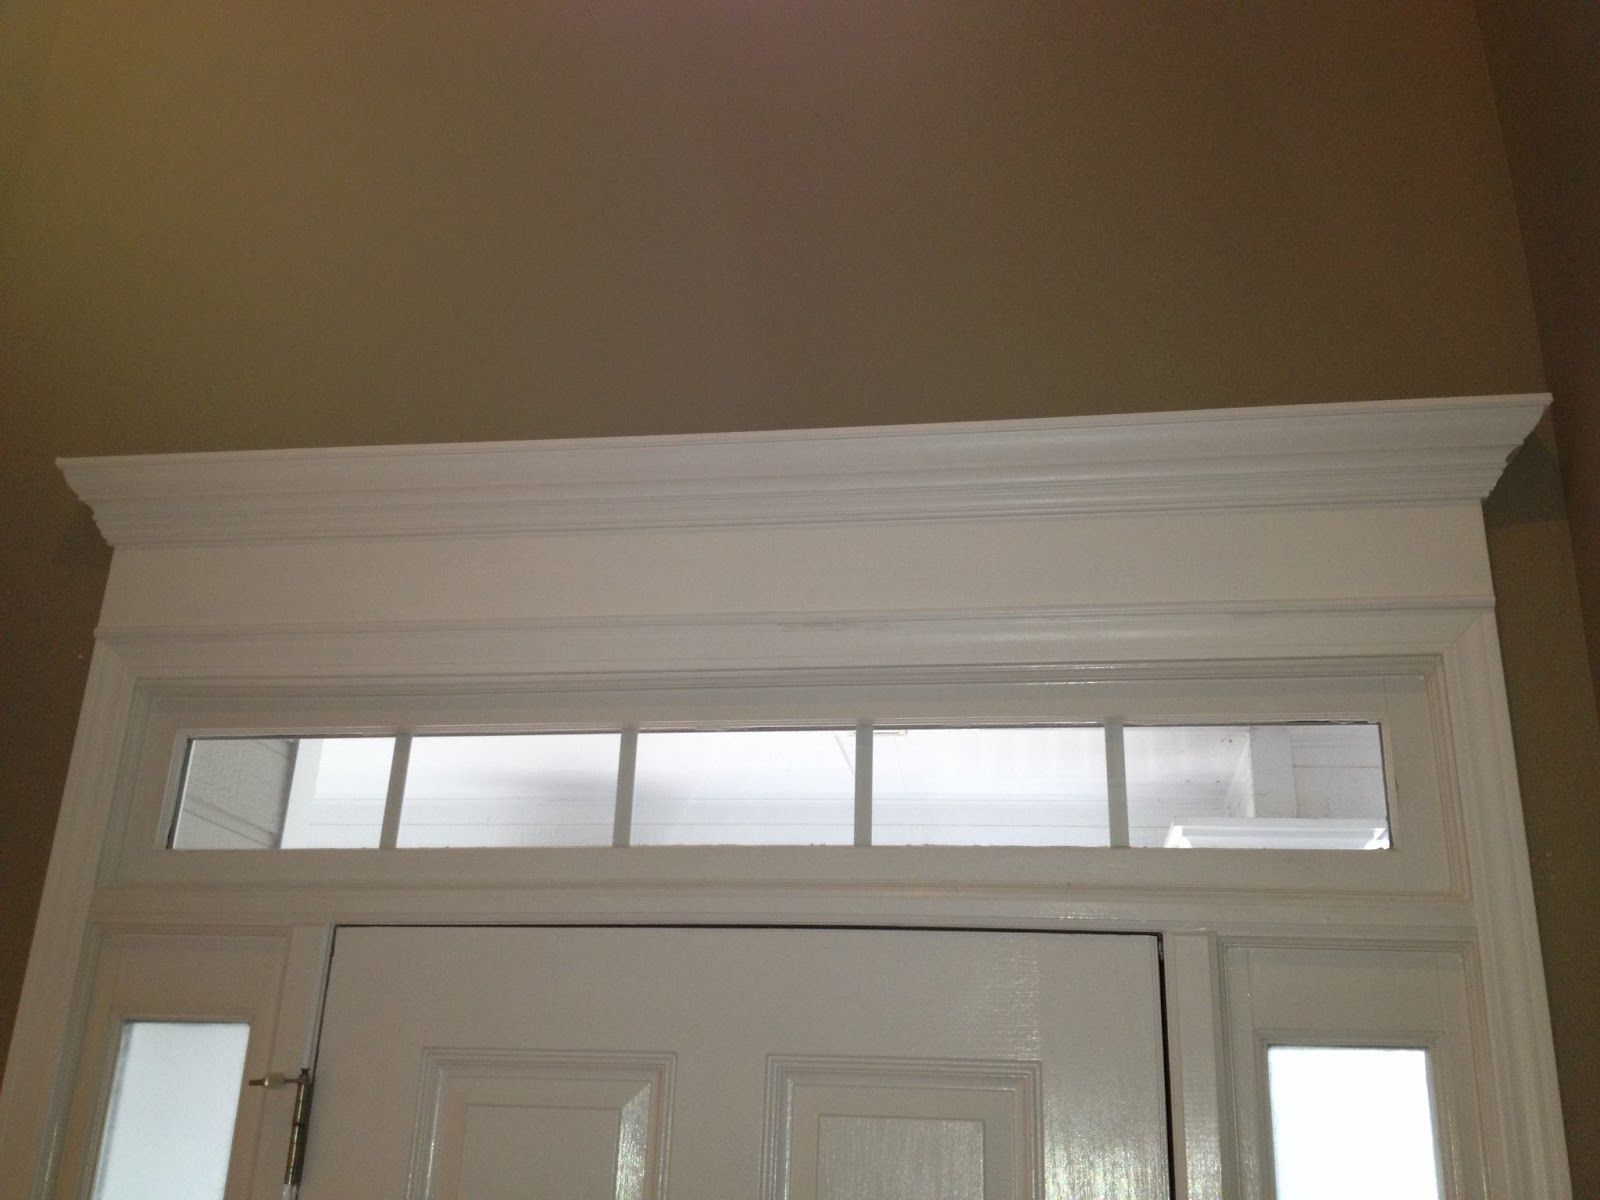 cheriesparetime Door Crown Moulding & cheriesparetime: Door Crown Moulding | Destin ceiling make over ...